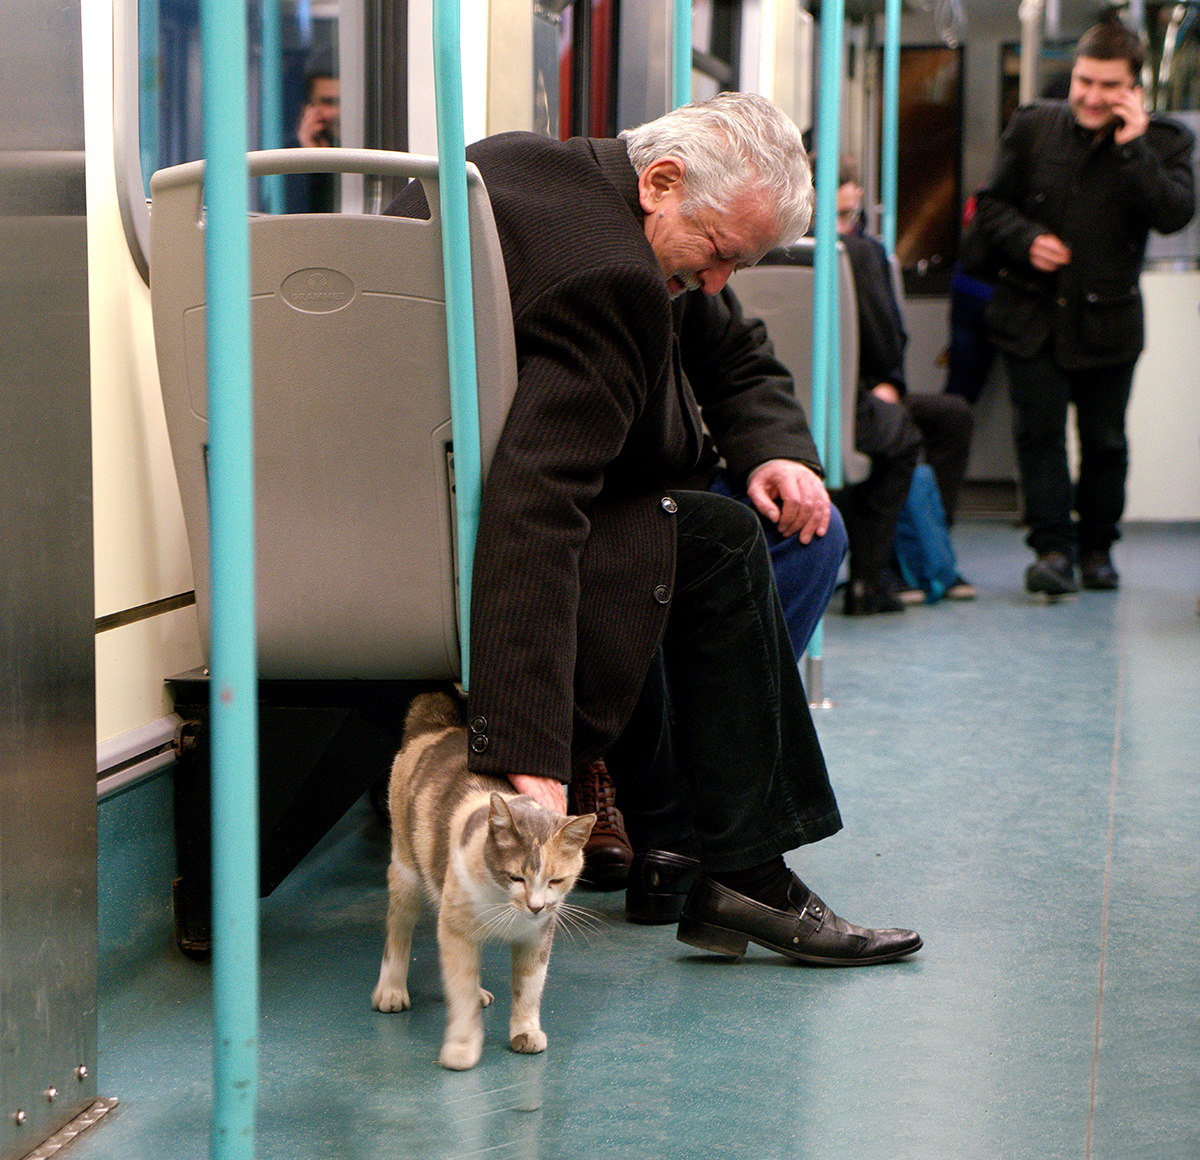 #56 —Karaköy, Funicular – 